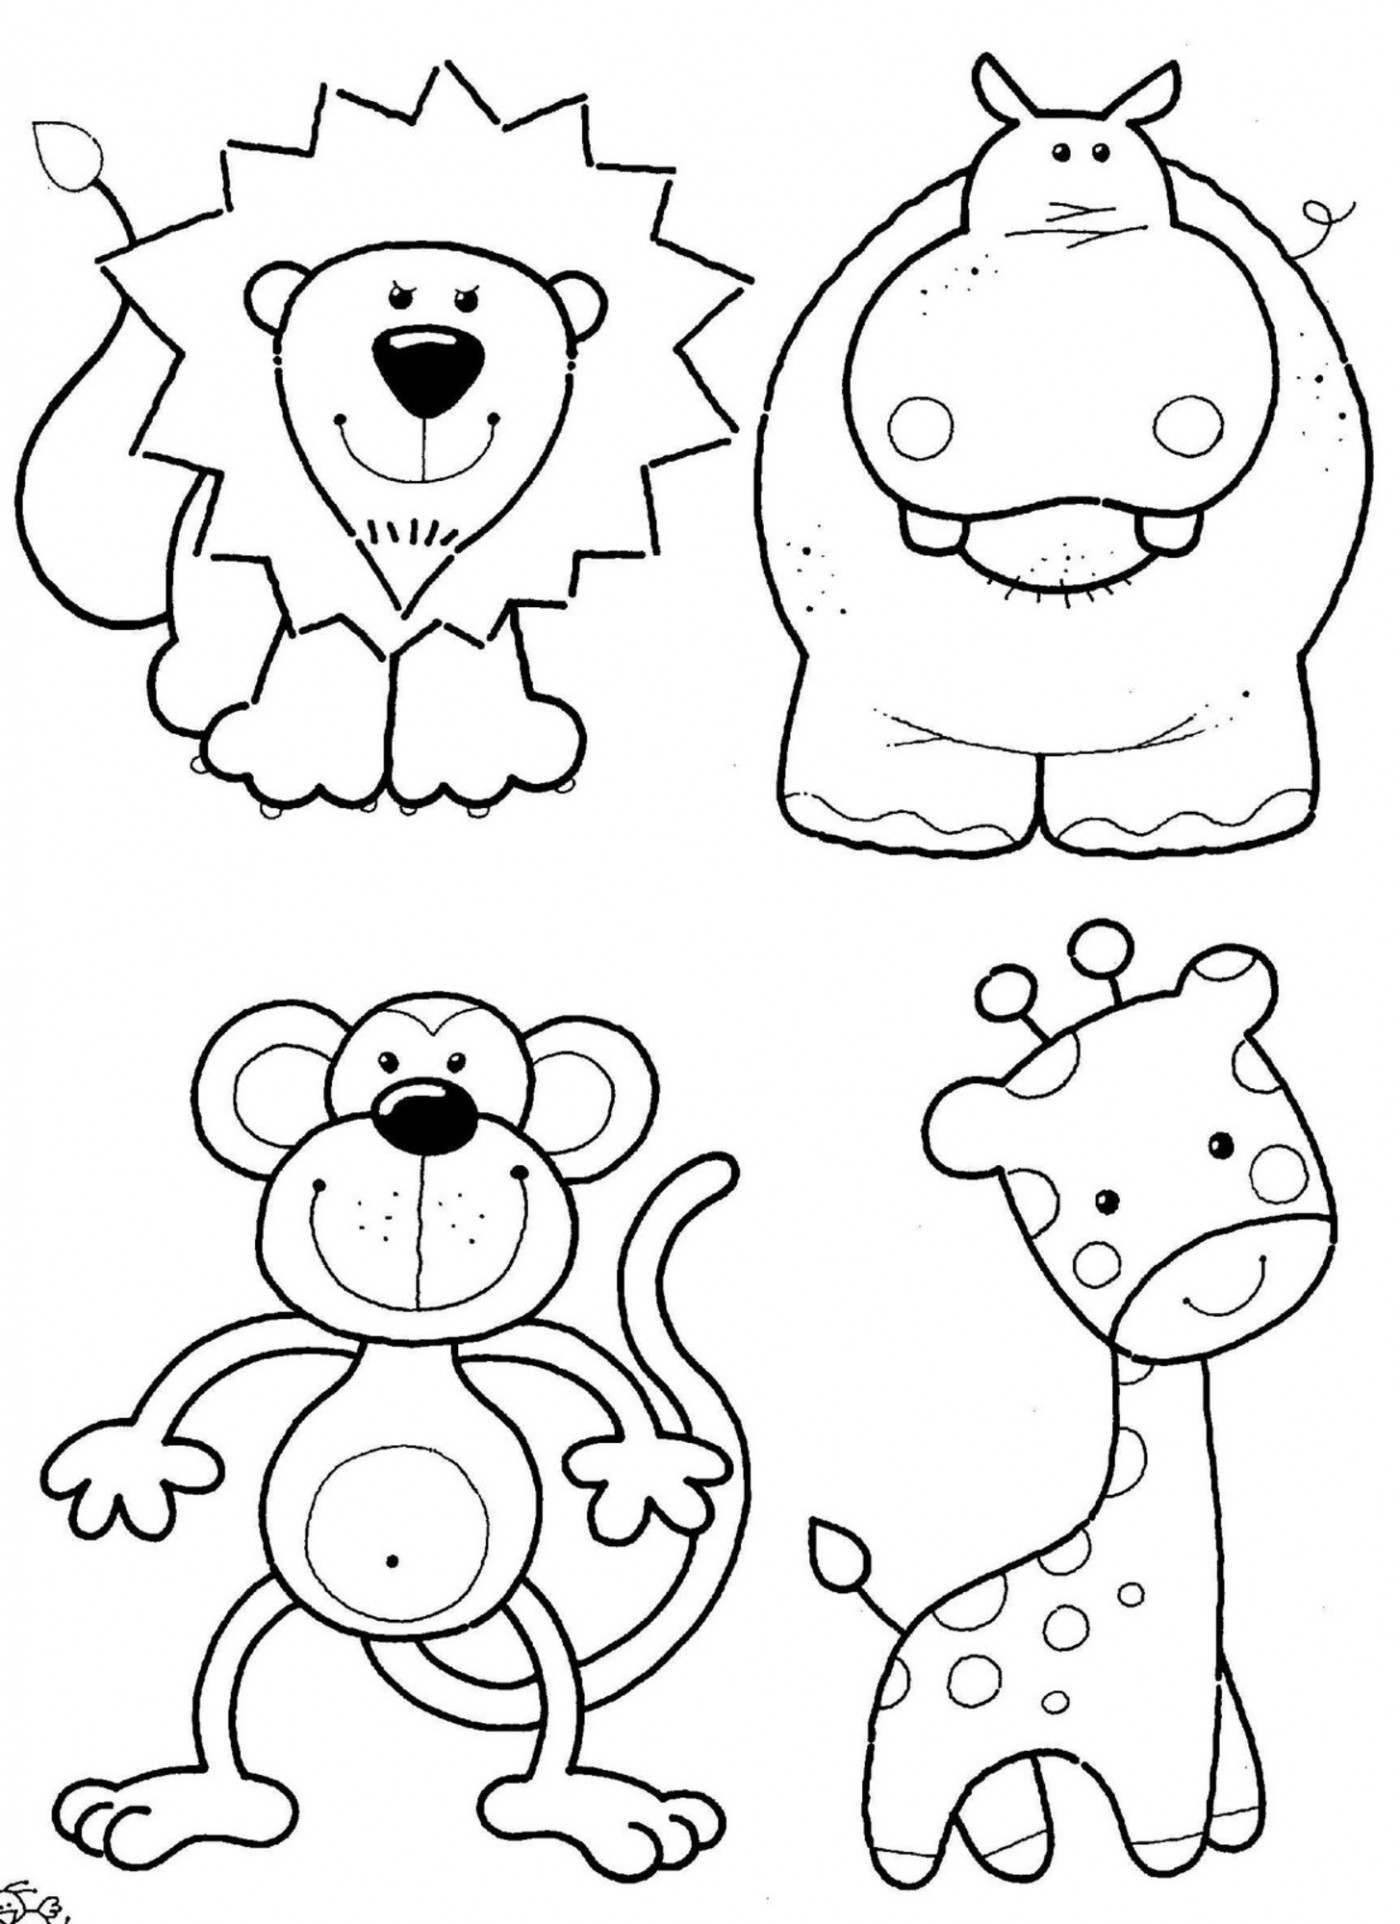 Animal Coloring Pages (14) | Coloring Kids